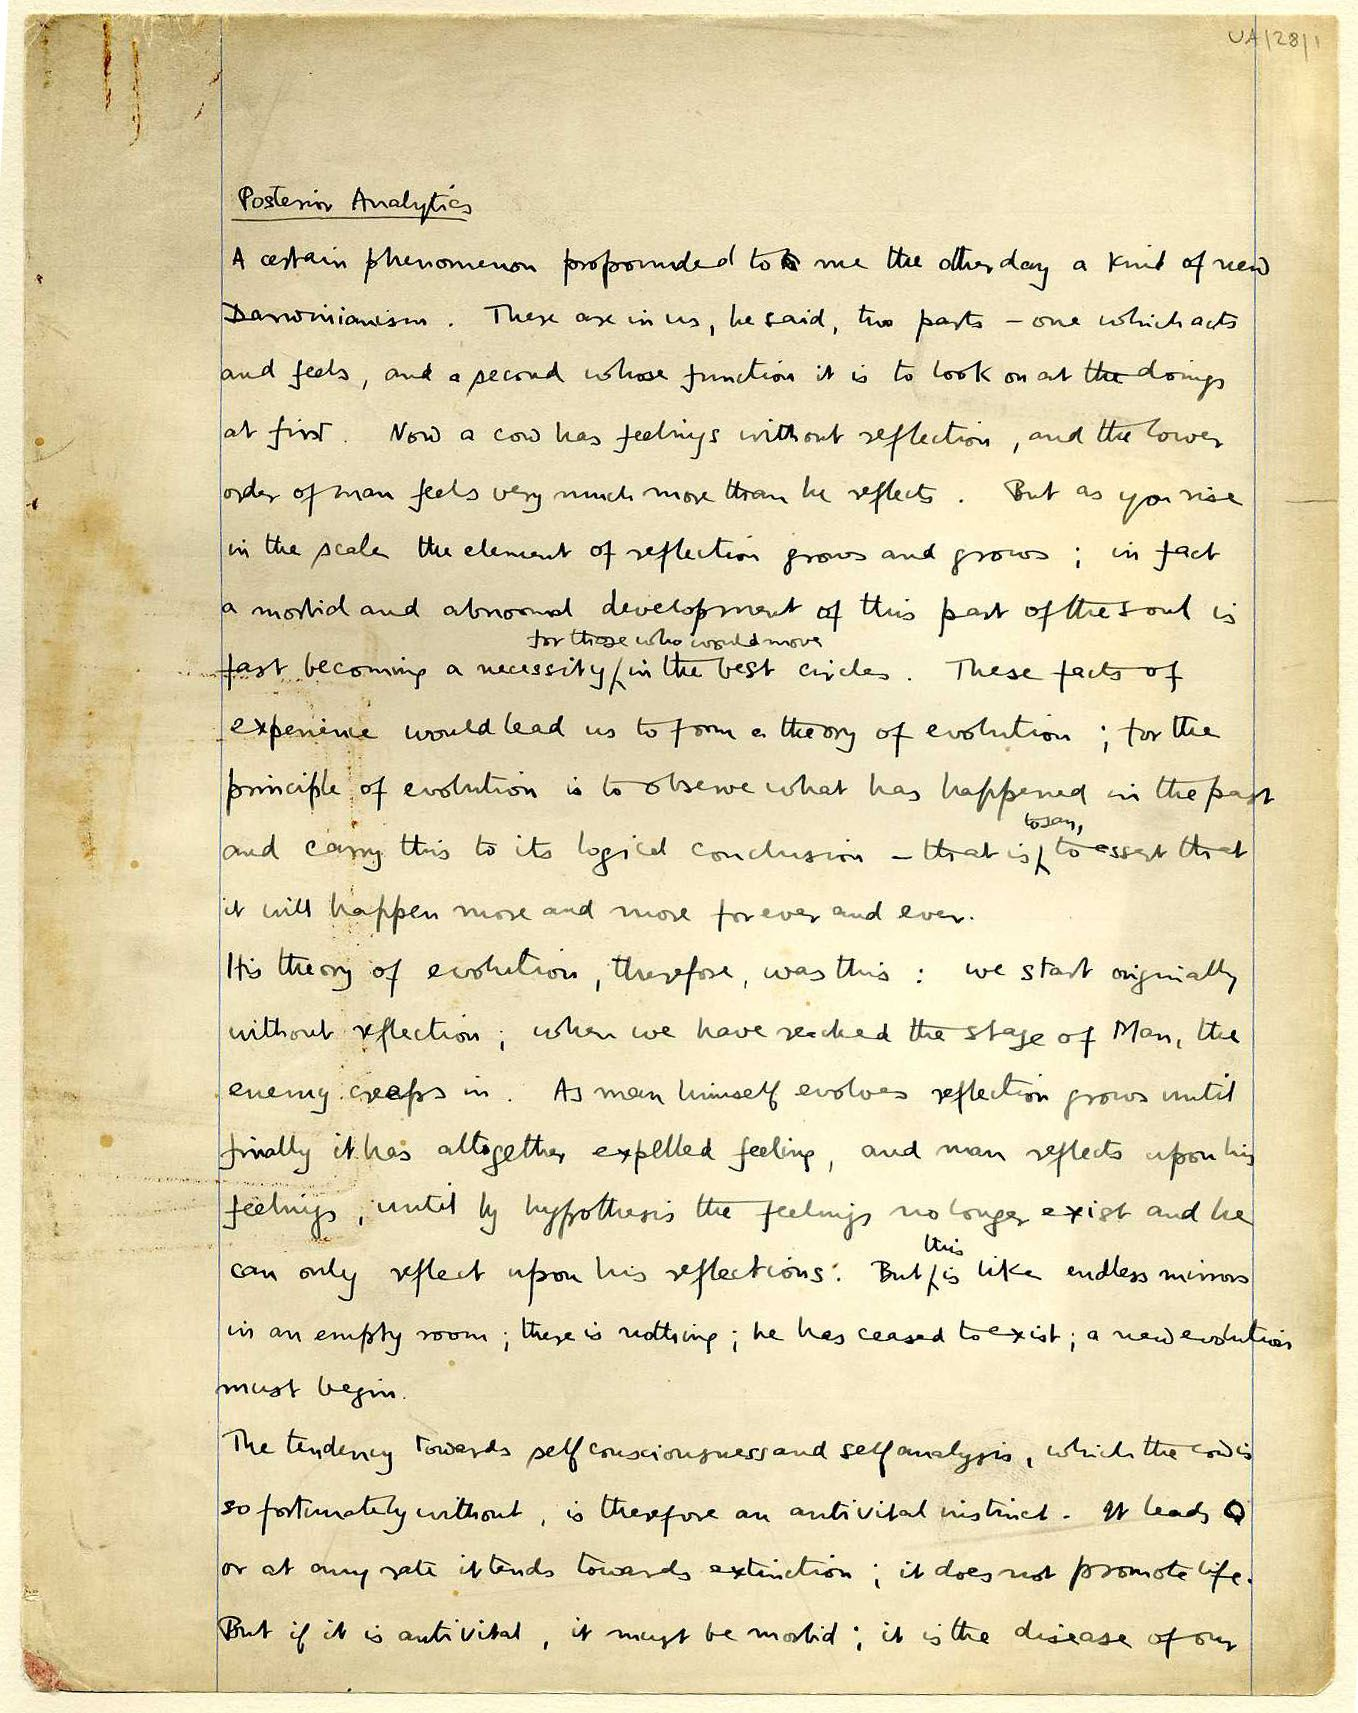 First page of a paper entitled 'Posterior analytics', which Keynes read to the Apostles, 1905-6. [JMK/UA/28]